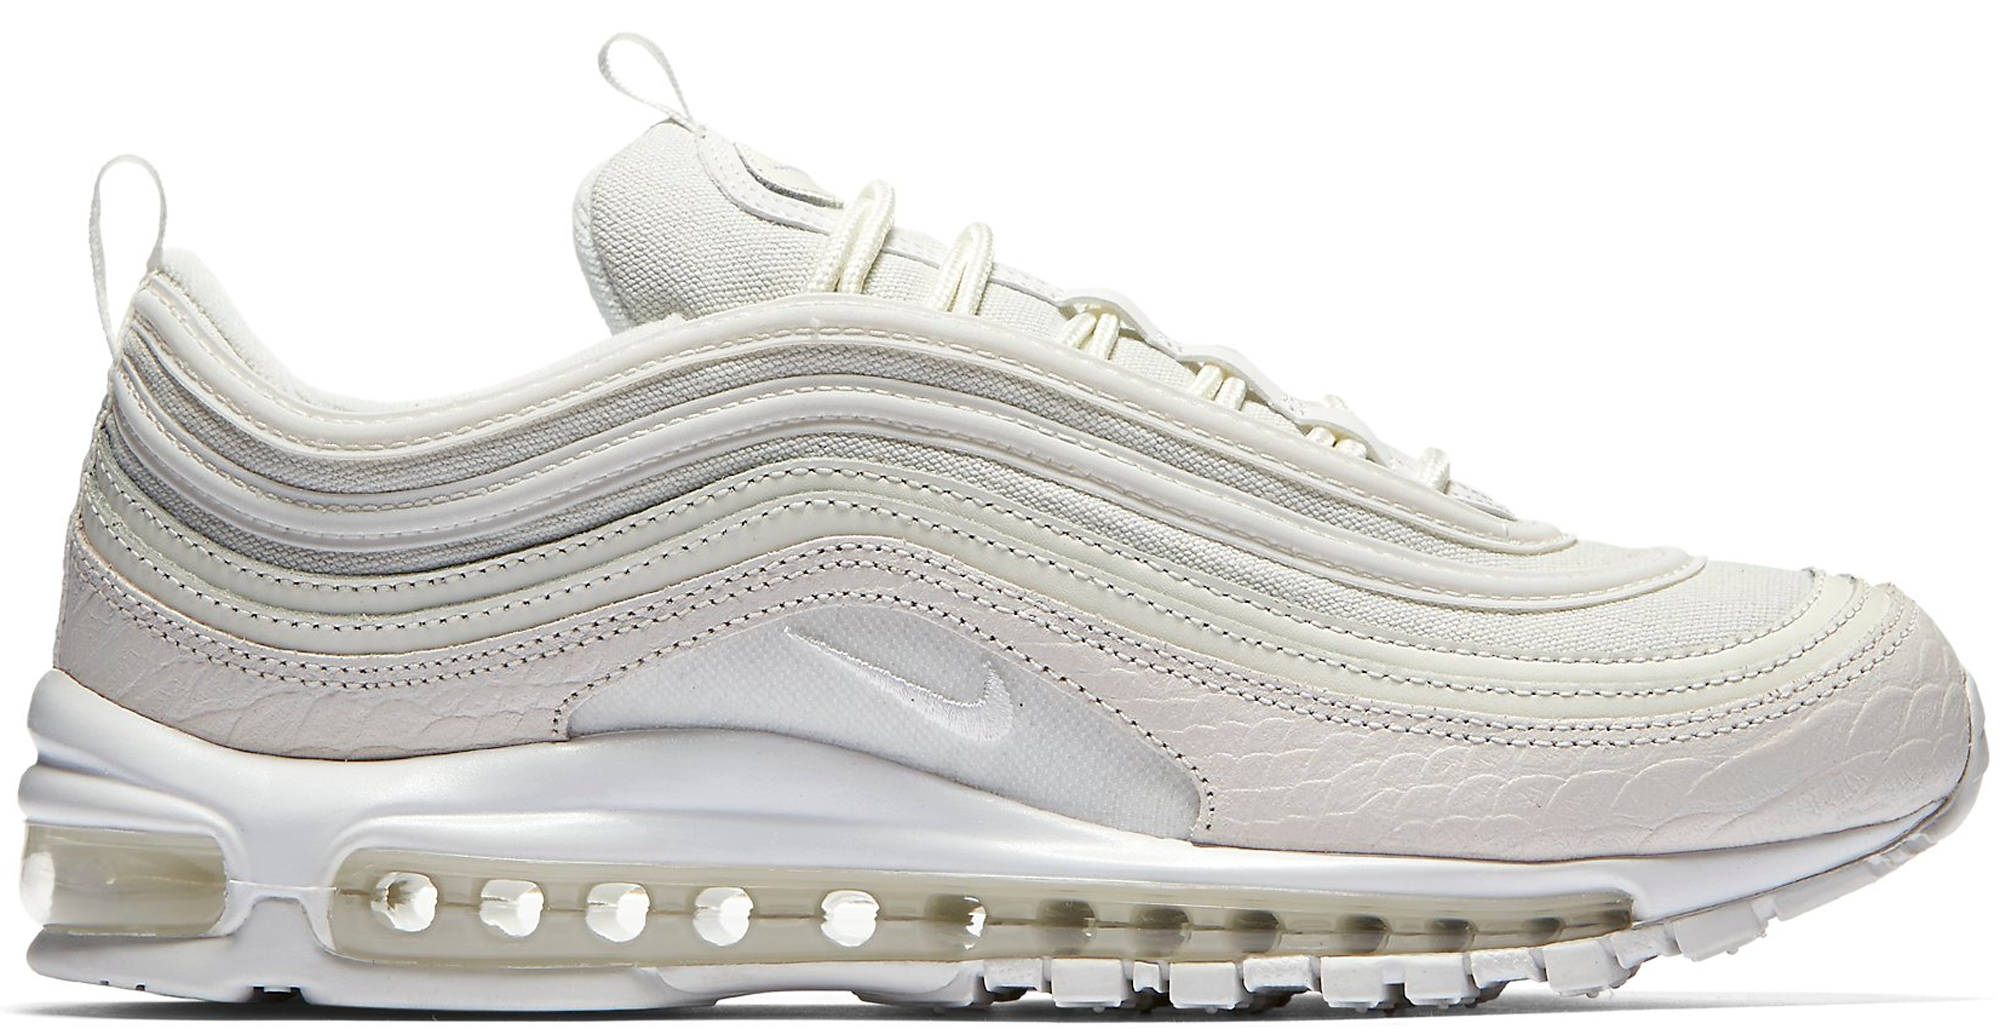 Nike Air Max 97 Summit White - StockX News 88d926f5a